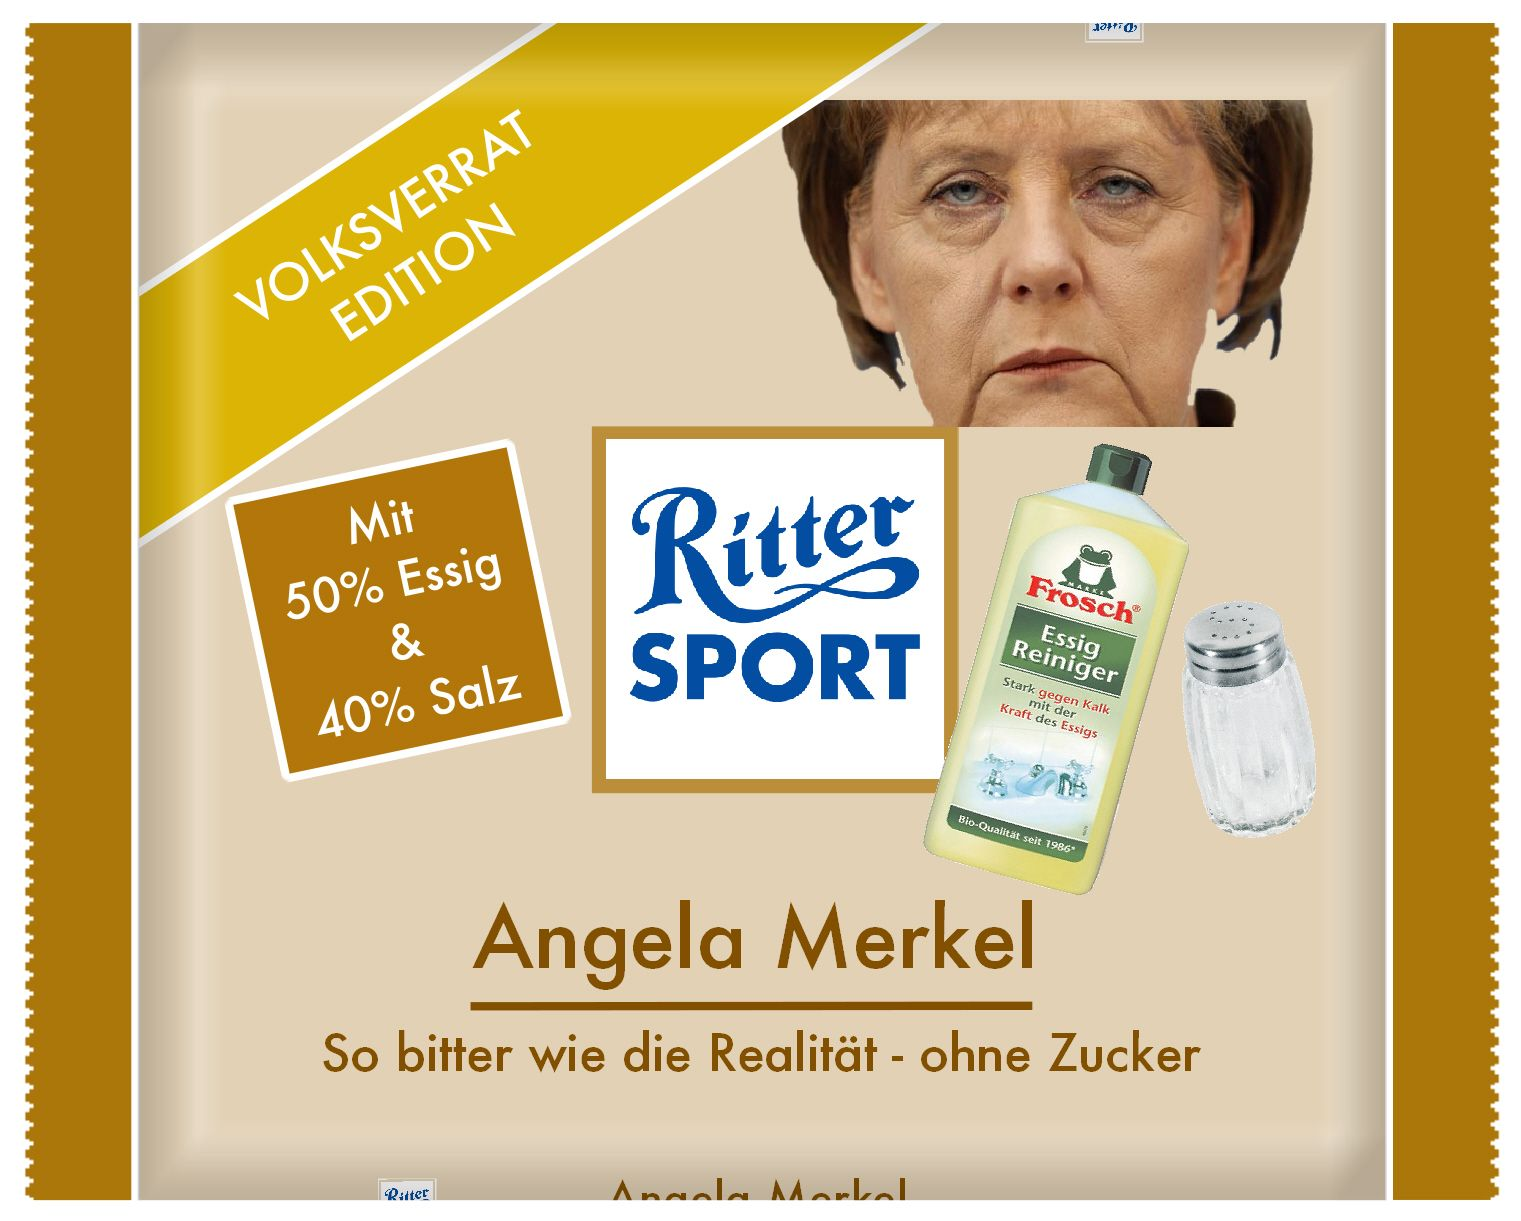 ritter sport angela merkel so bitter wie die realit t. Black Bedroom Furniture Sets. Home Design Ideas